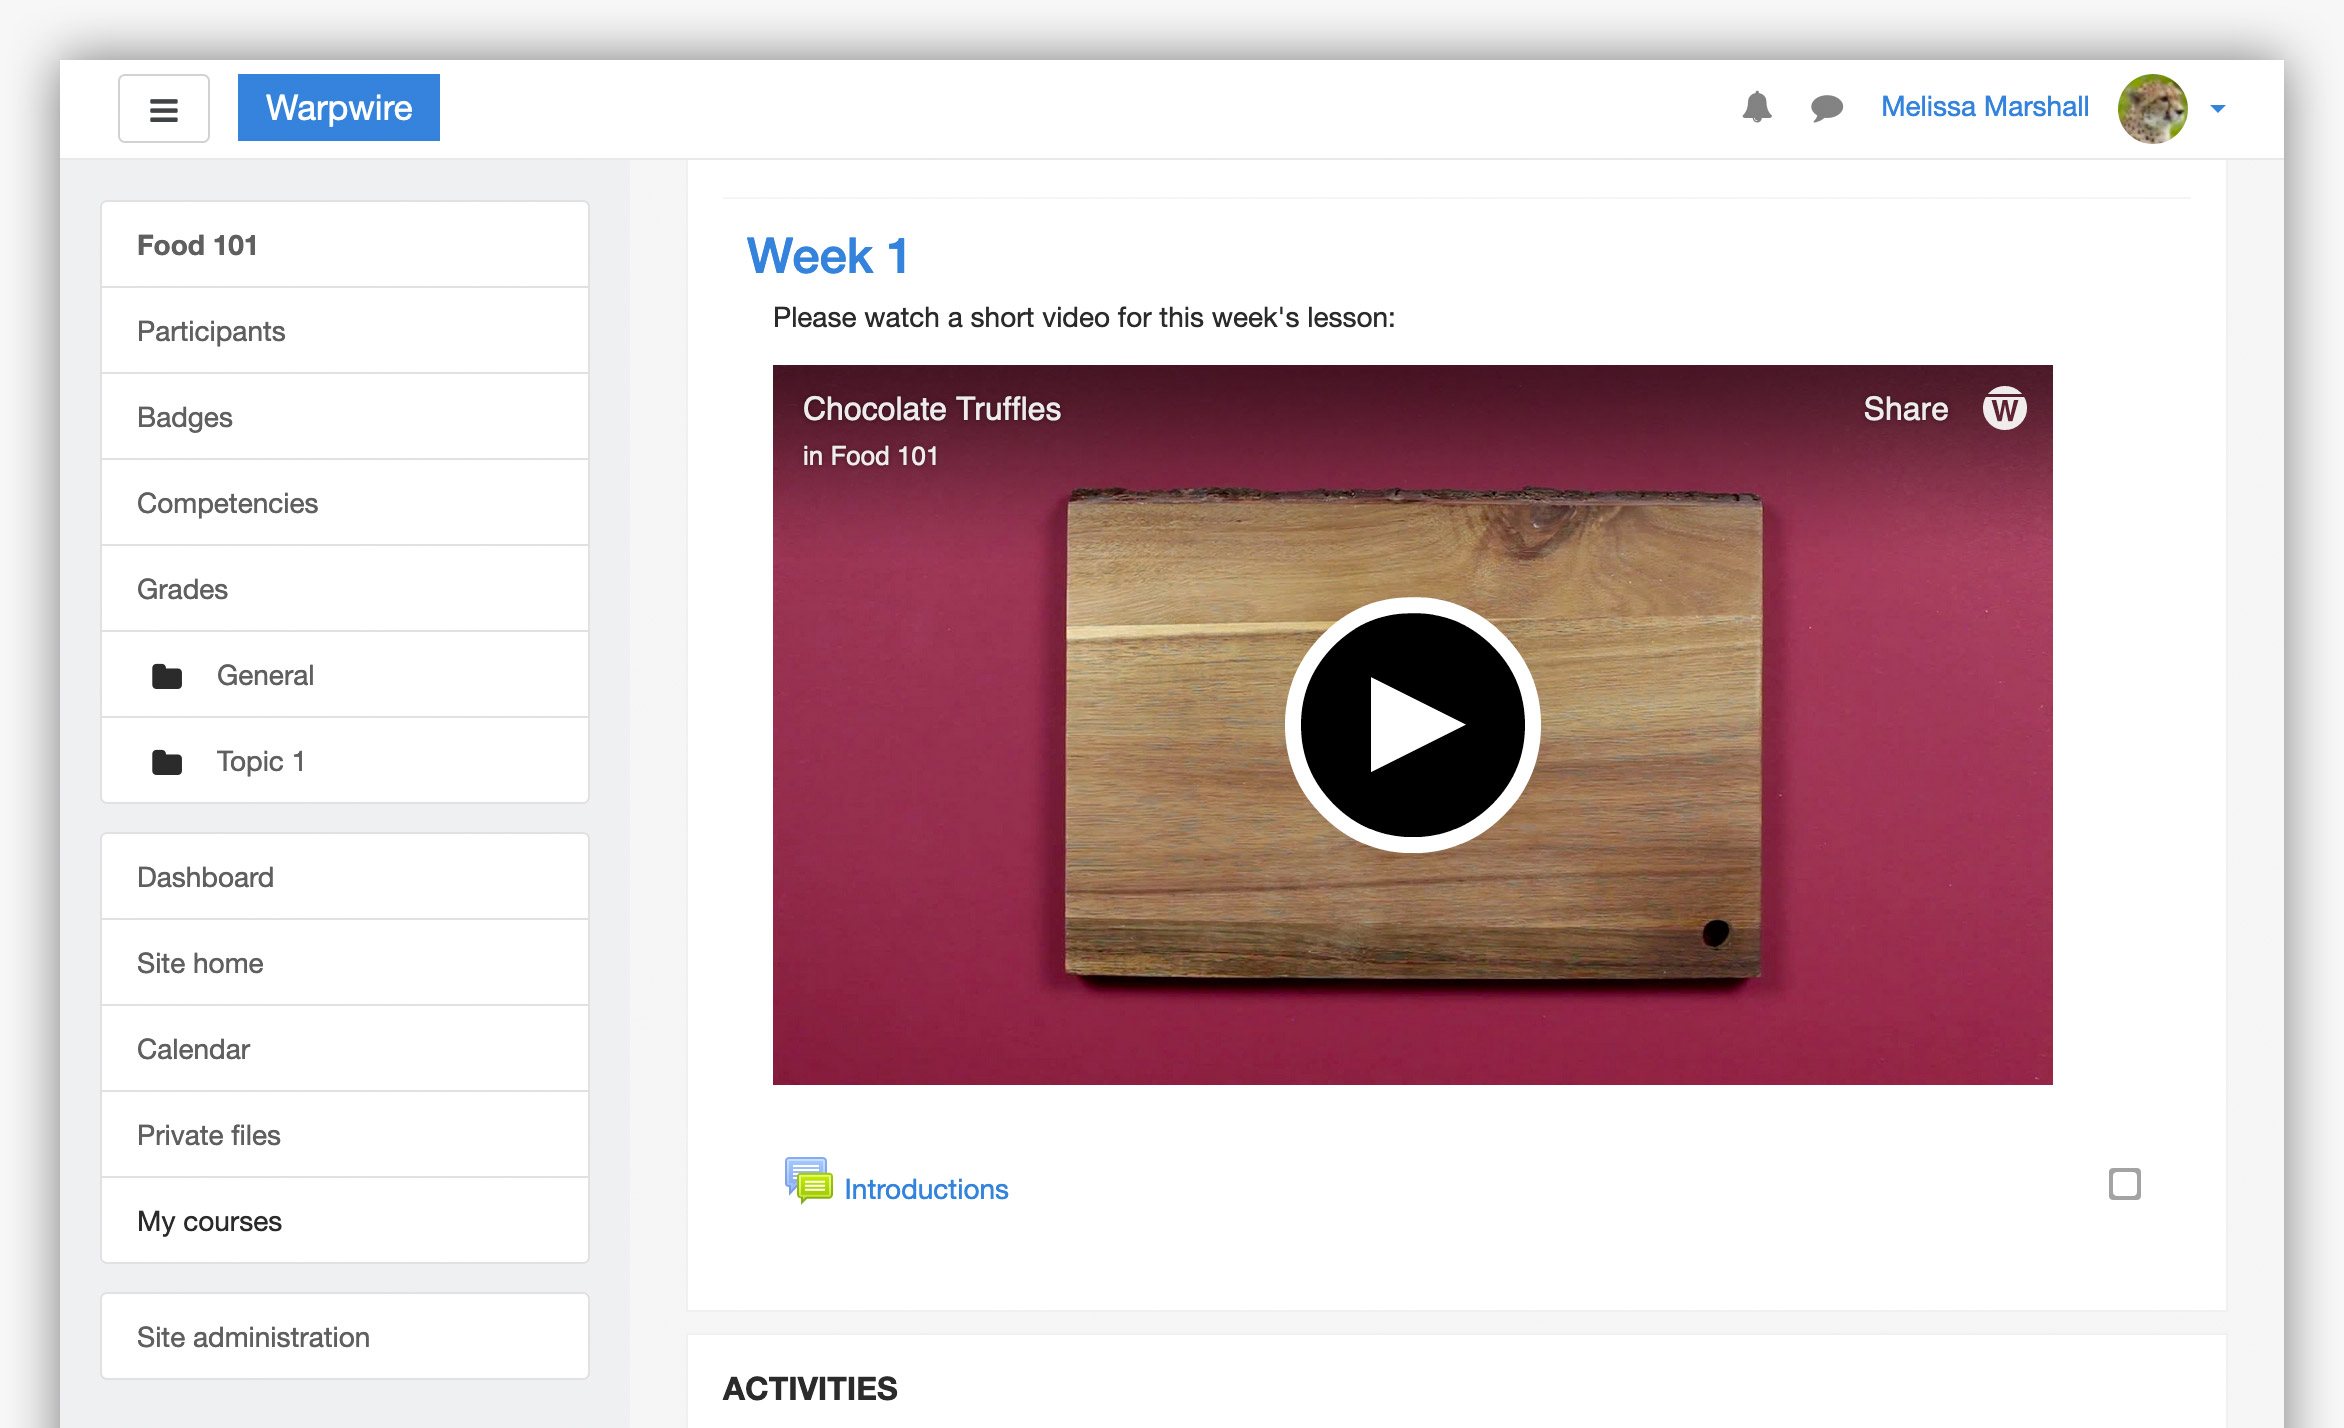 Read more about Warpwire video platform in Moodle